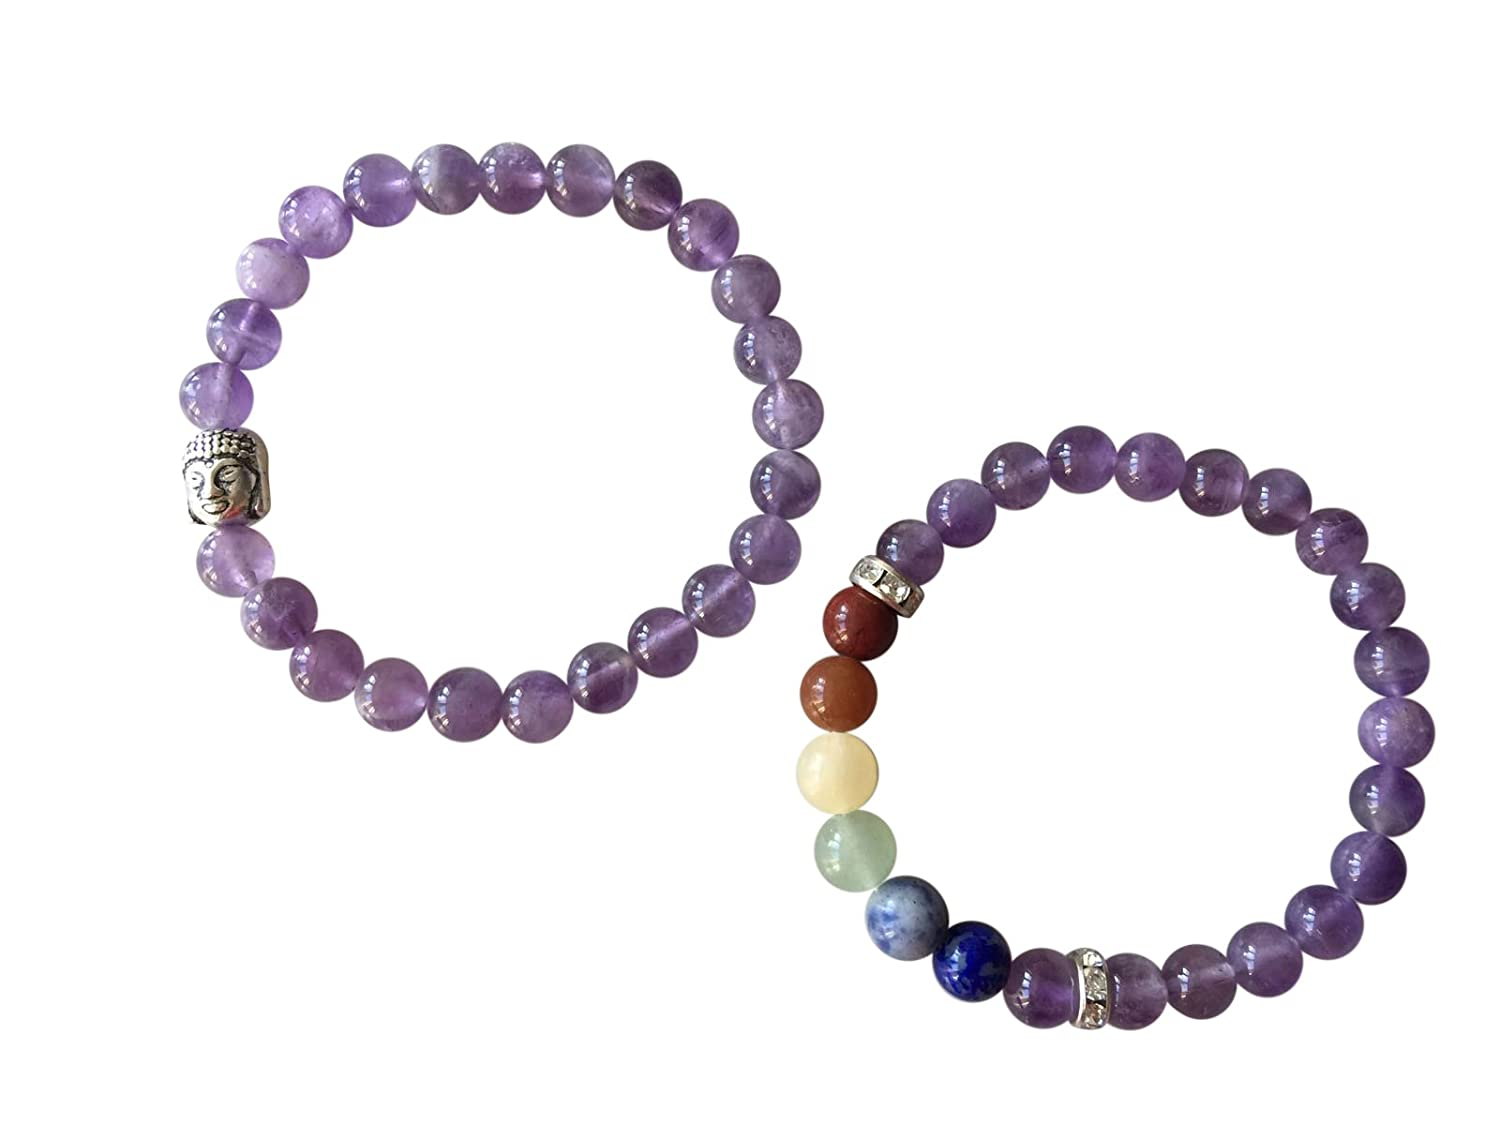 'Corpo mente e anima' Genuine Amethyst Gemstone chakra perlina, Buddha ~ ~ pietre naturali eticamente da colline dell' India occidentale gioielli fatti a mano, in confezione regalo corpo e anima prodotto in modo etico con ametista gioiello realizzato a man